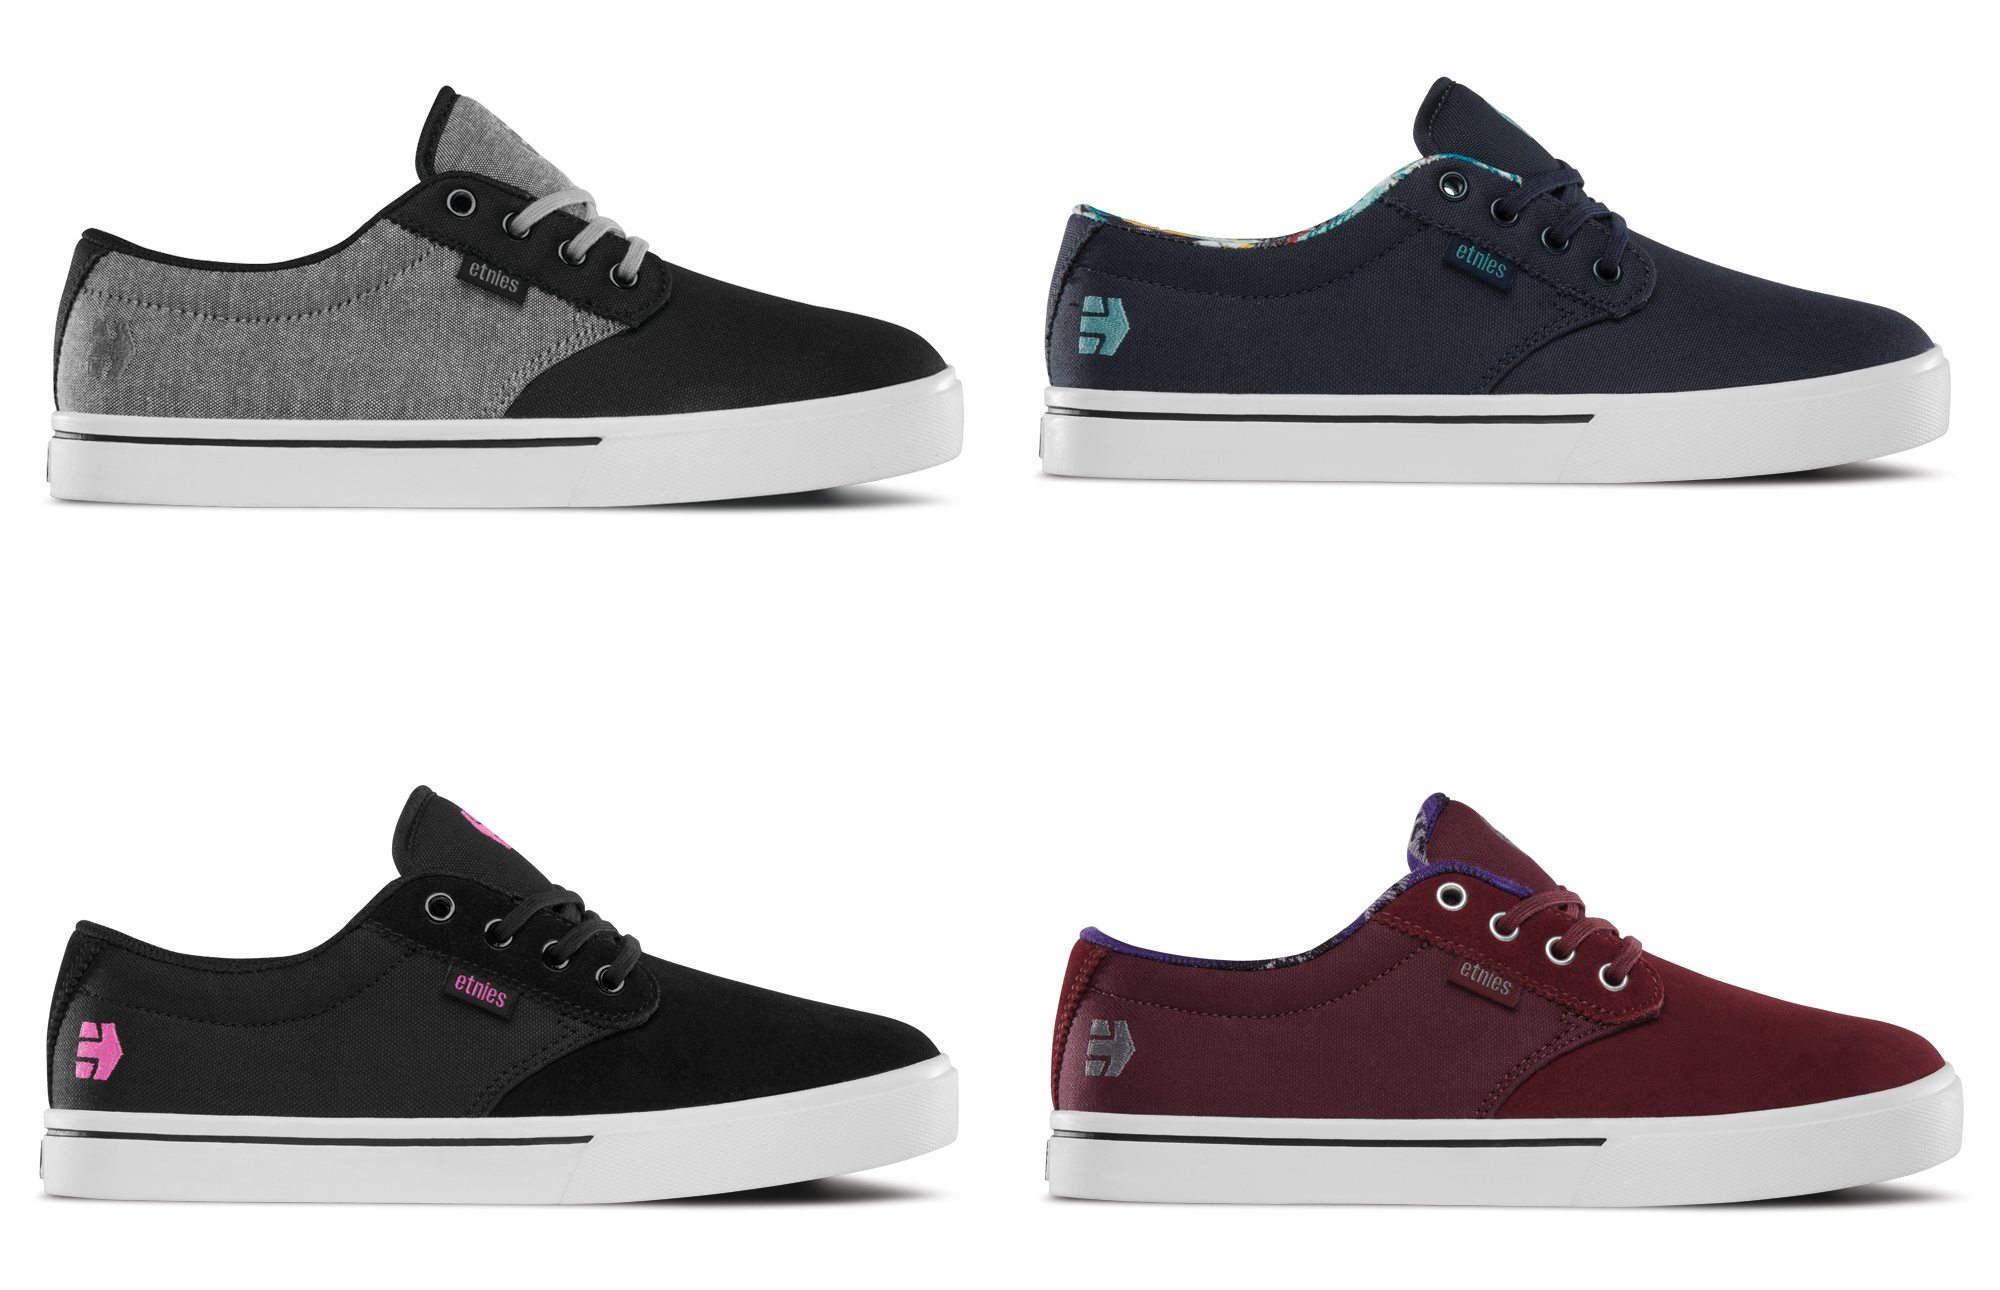 Women's Skate Shoes. Showing 48 of results that match your query. Search Product Result. Vans Womens Authentic ASPCA Low Top Trainer Skate Shoes. Product - Vision Street Wear Womens Suede Lo Skate Shoe. Product Image. Price $ Product Title.